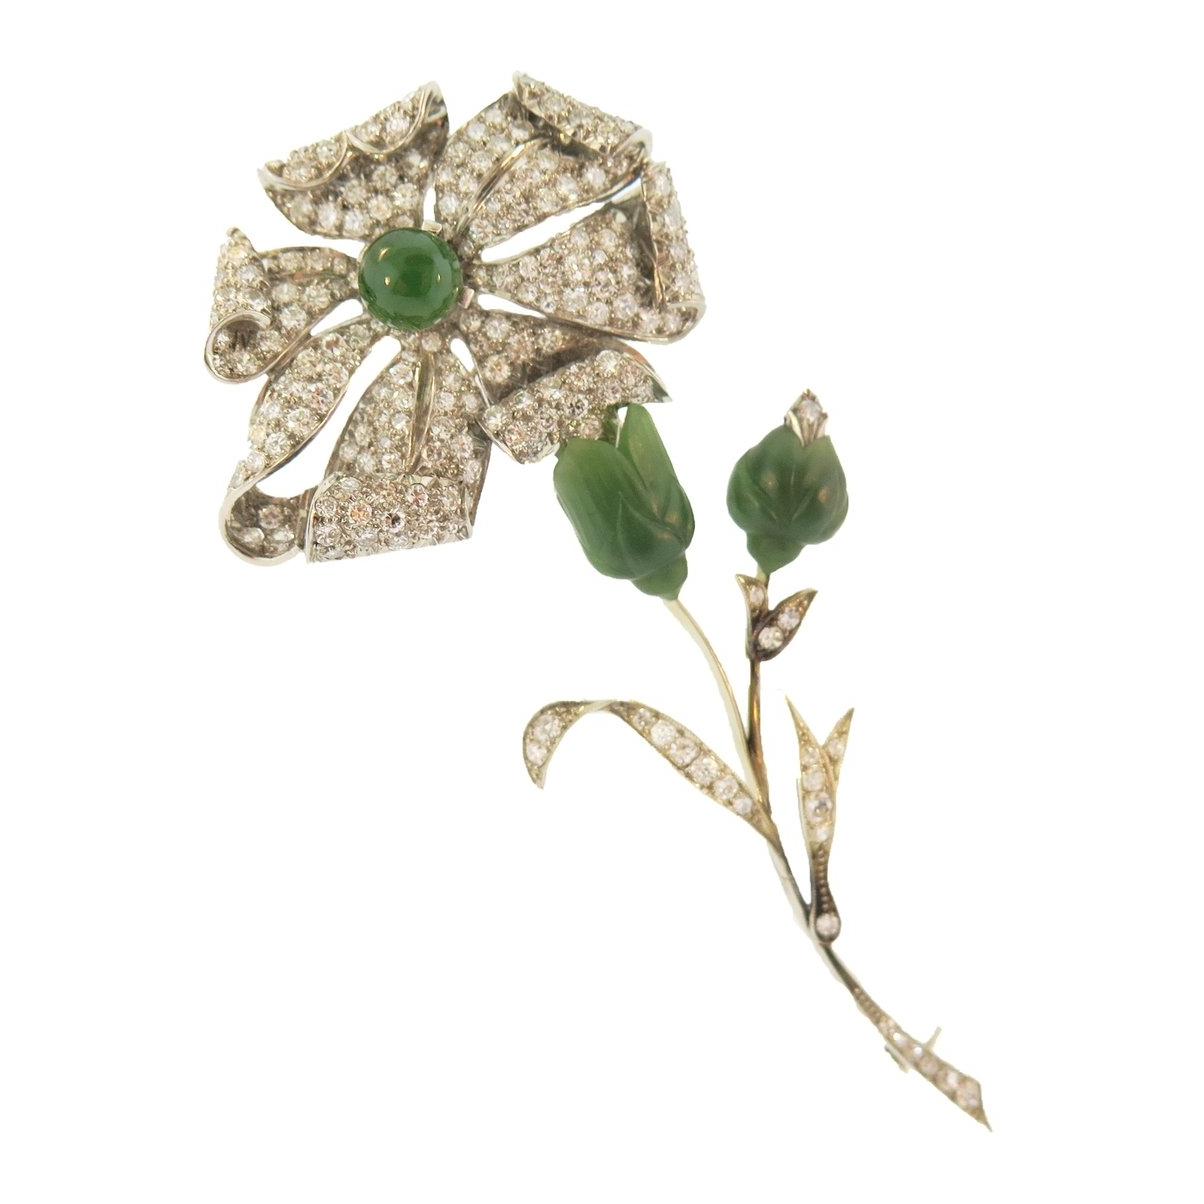 Diamond and Nephrite Jade Floral Brooch